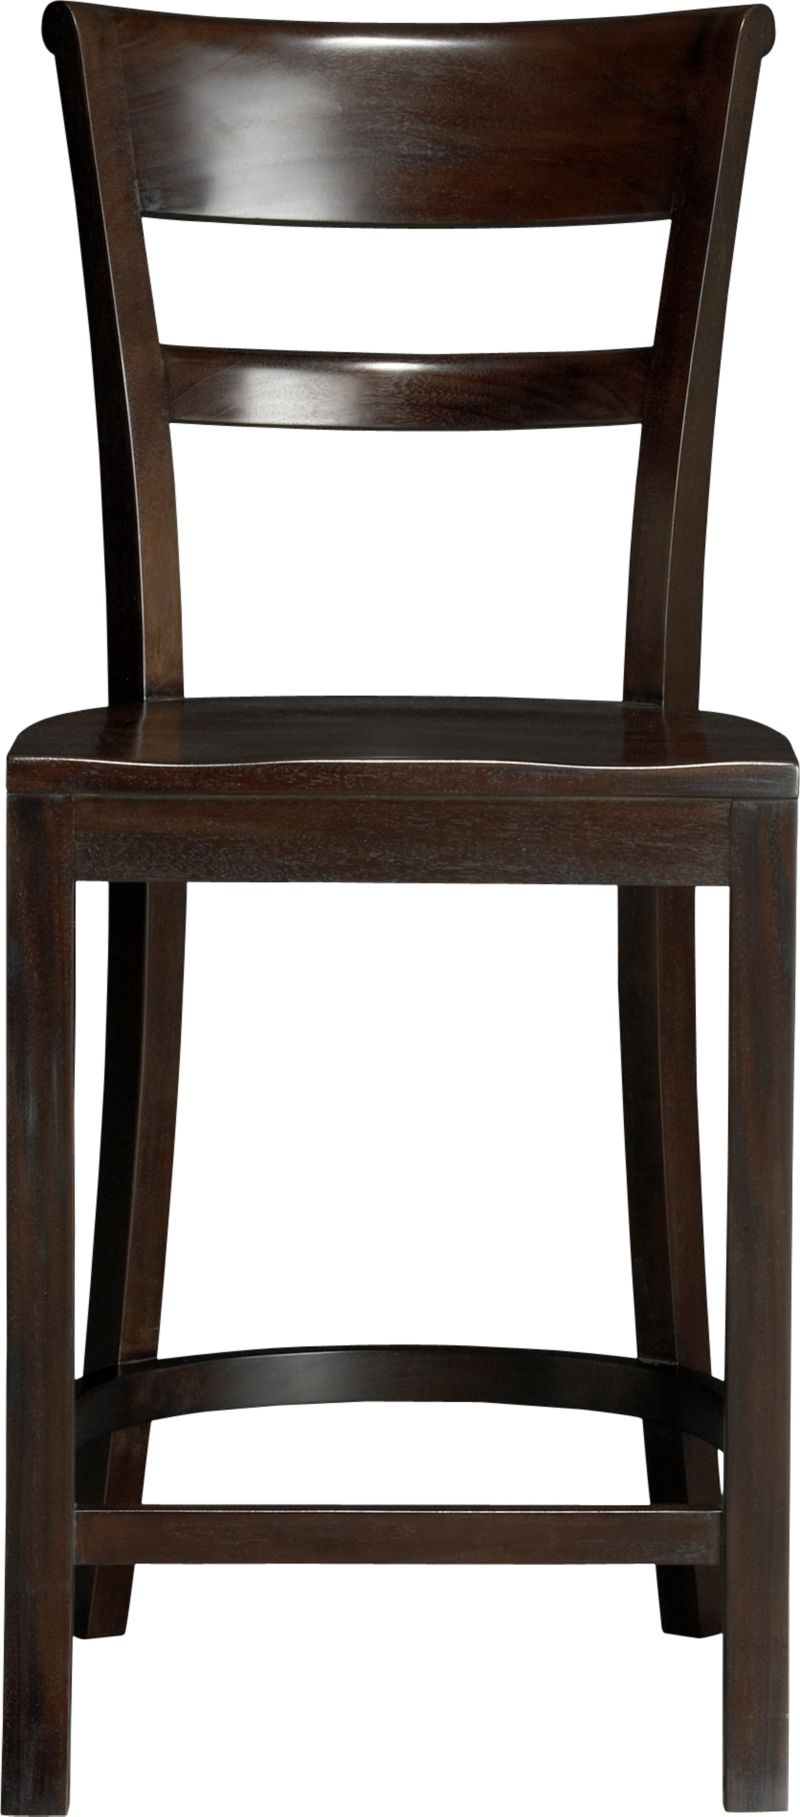 """Solid mahogany seating pulls up to counter with ease and elegance. Barstool has graceful rolled back and comfortable contours to the seat. A soft-sheen lacquer adds a finishing detail.<br /><br /><NEWTAG/><ul><li>FSC-certified solid mahogany</li><li>Clear protective lacquer finish</li><li>24""""H seat sized for counters</li><li>Made in Indonesia</li></ul>"""